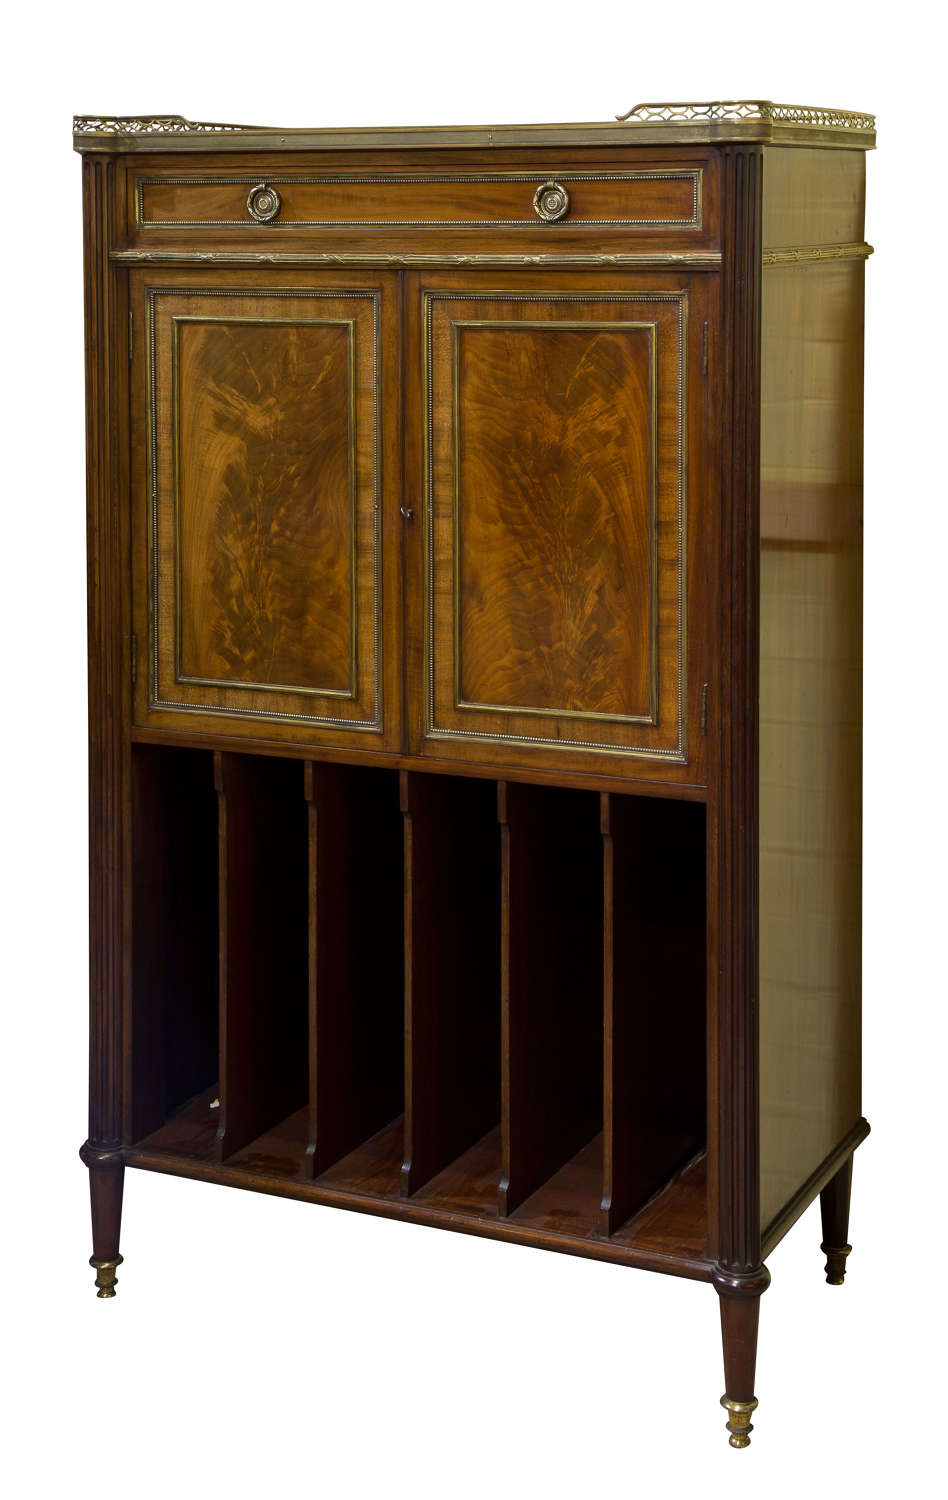 Louis XVI style music cabinet c1870